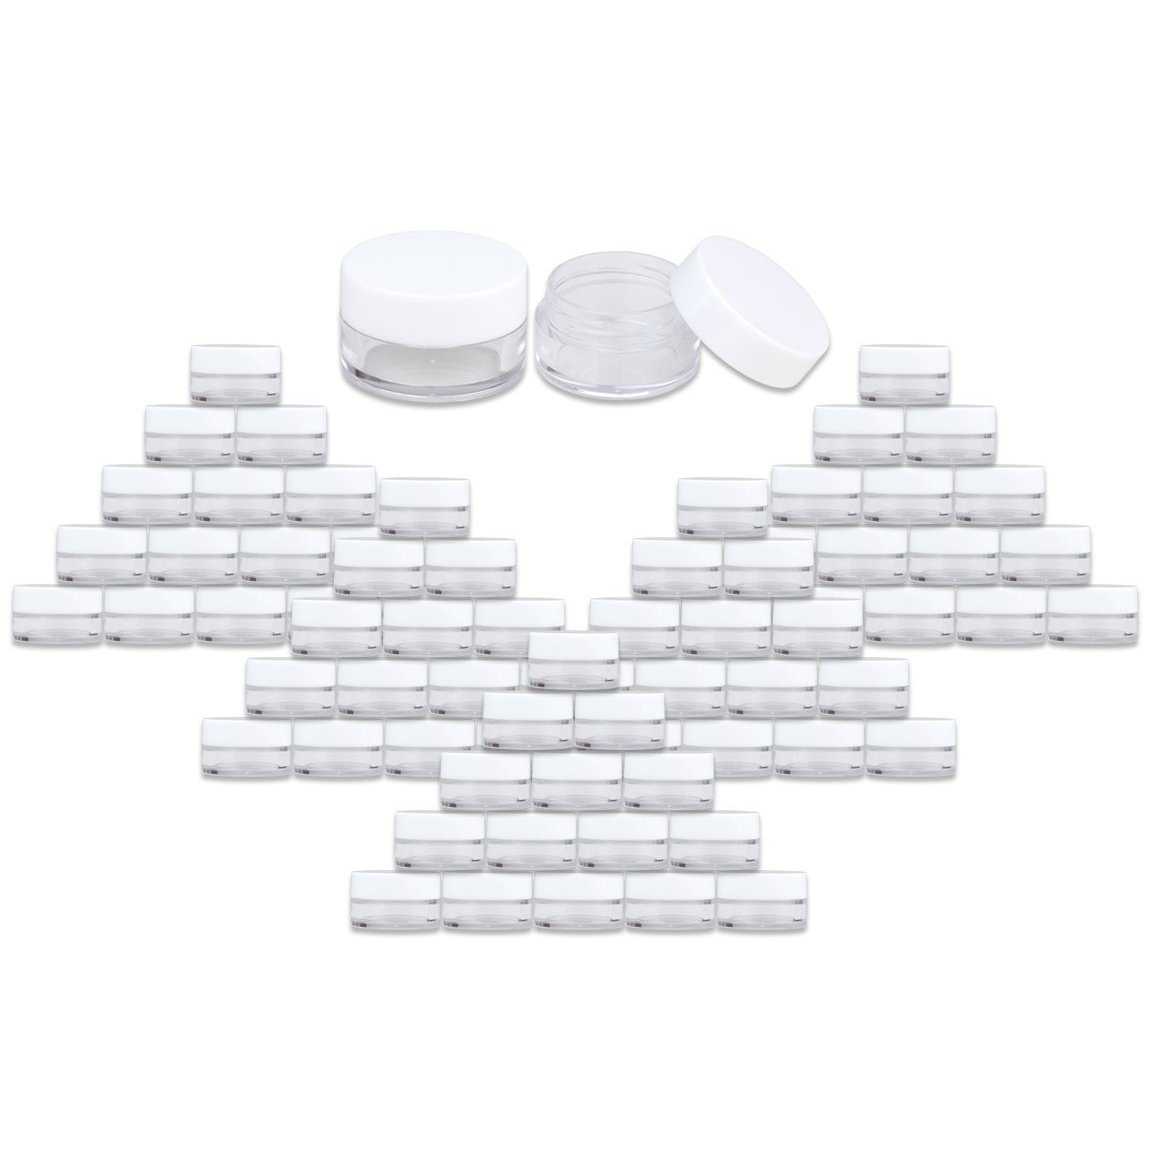 2400 Jars - Beauticom High-Graded 5 Grams/5 mL BPA Free Thick Clear Acrylic 100% NO LEAK Plastic Jars empty Container White Lid for Cosmetic, Lip Balm, Beads, Creams, Lotion, Liquids, Sample, Travel